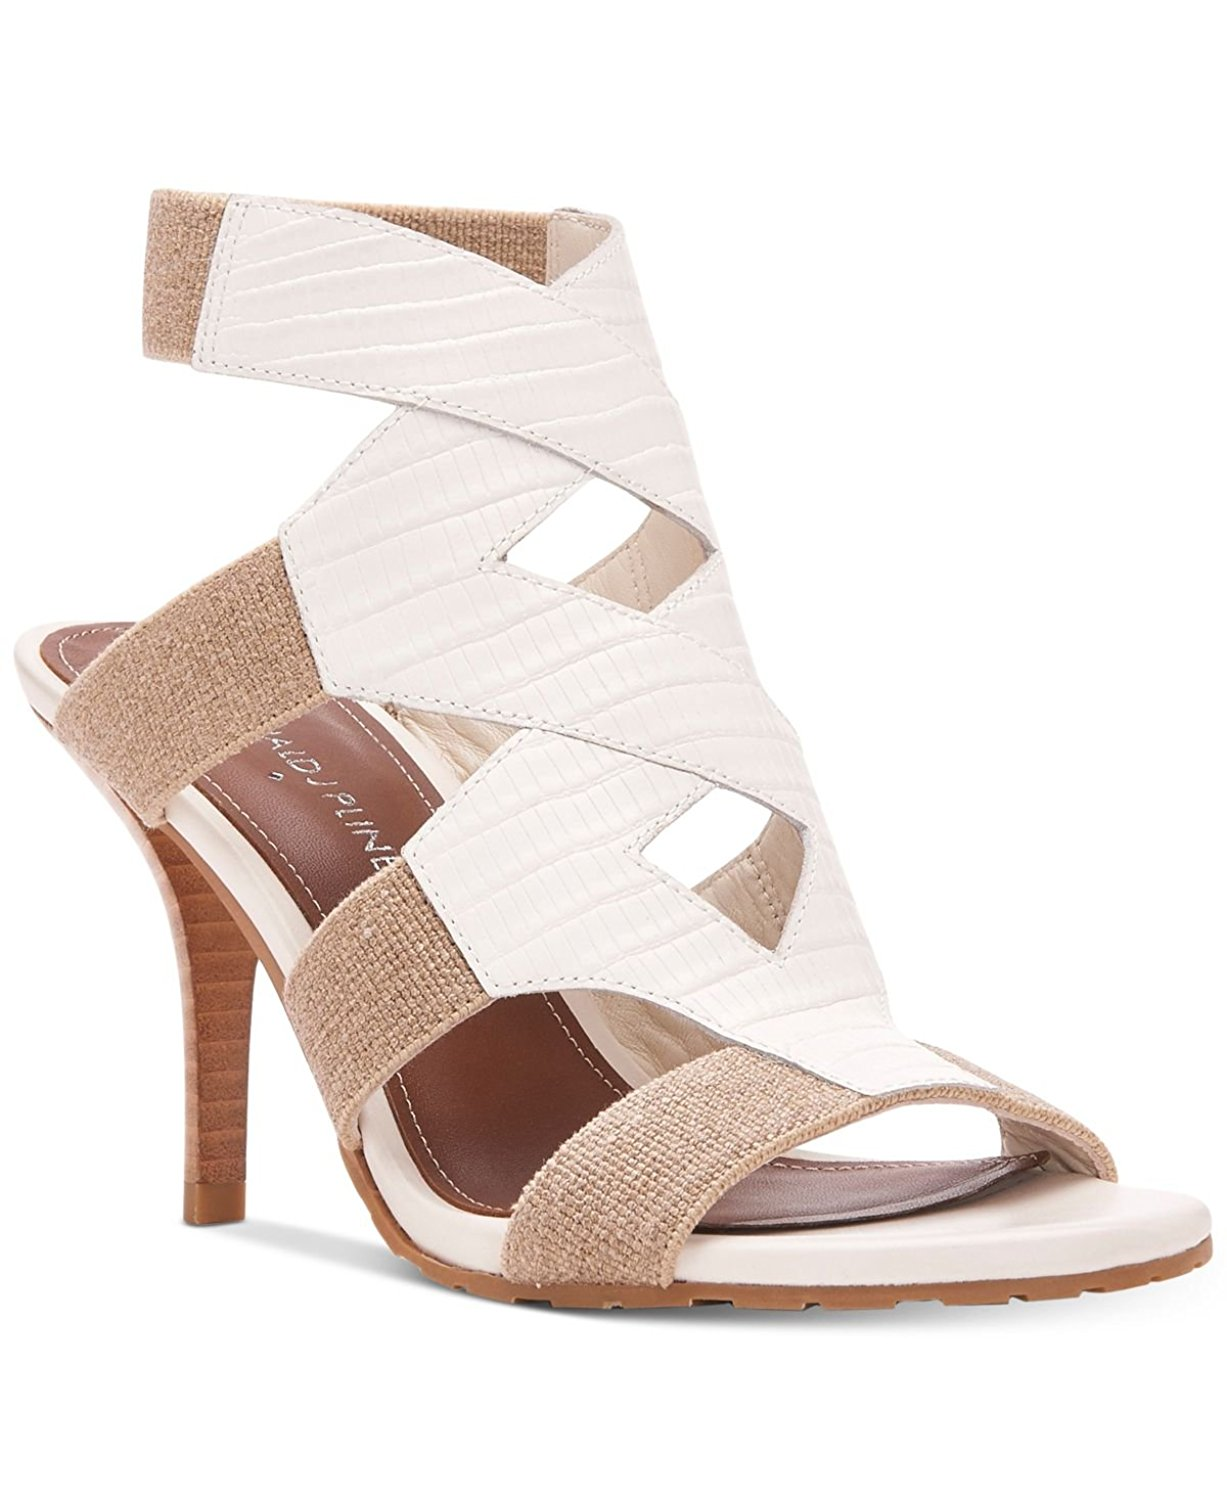 Donald J Pliner Womens Gwen Leather Open Toe Casual Strappy Sandals by Donald J Pliner